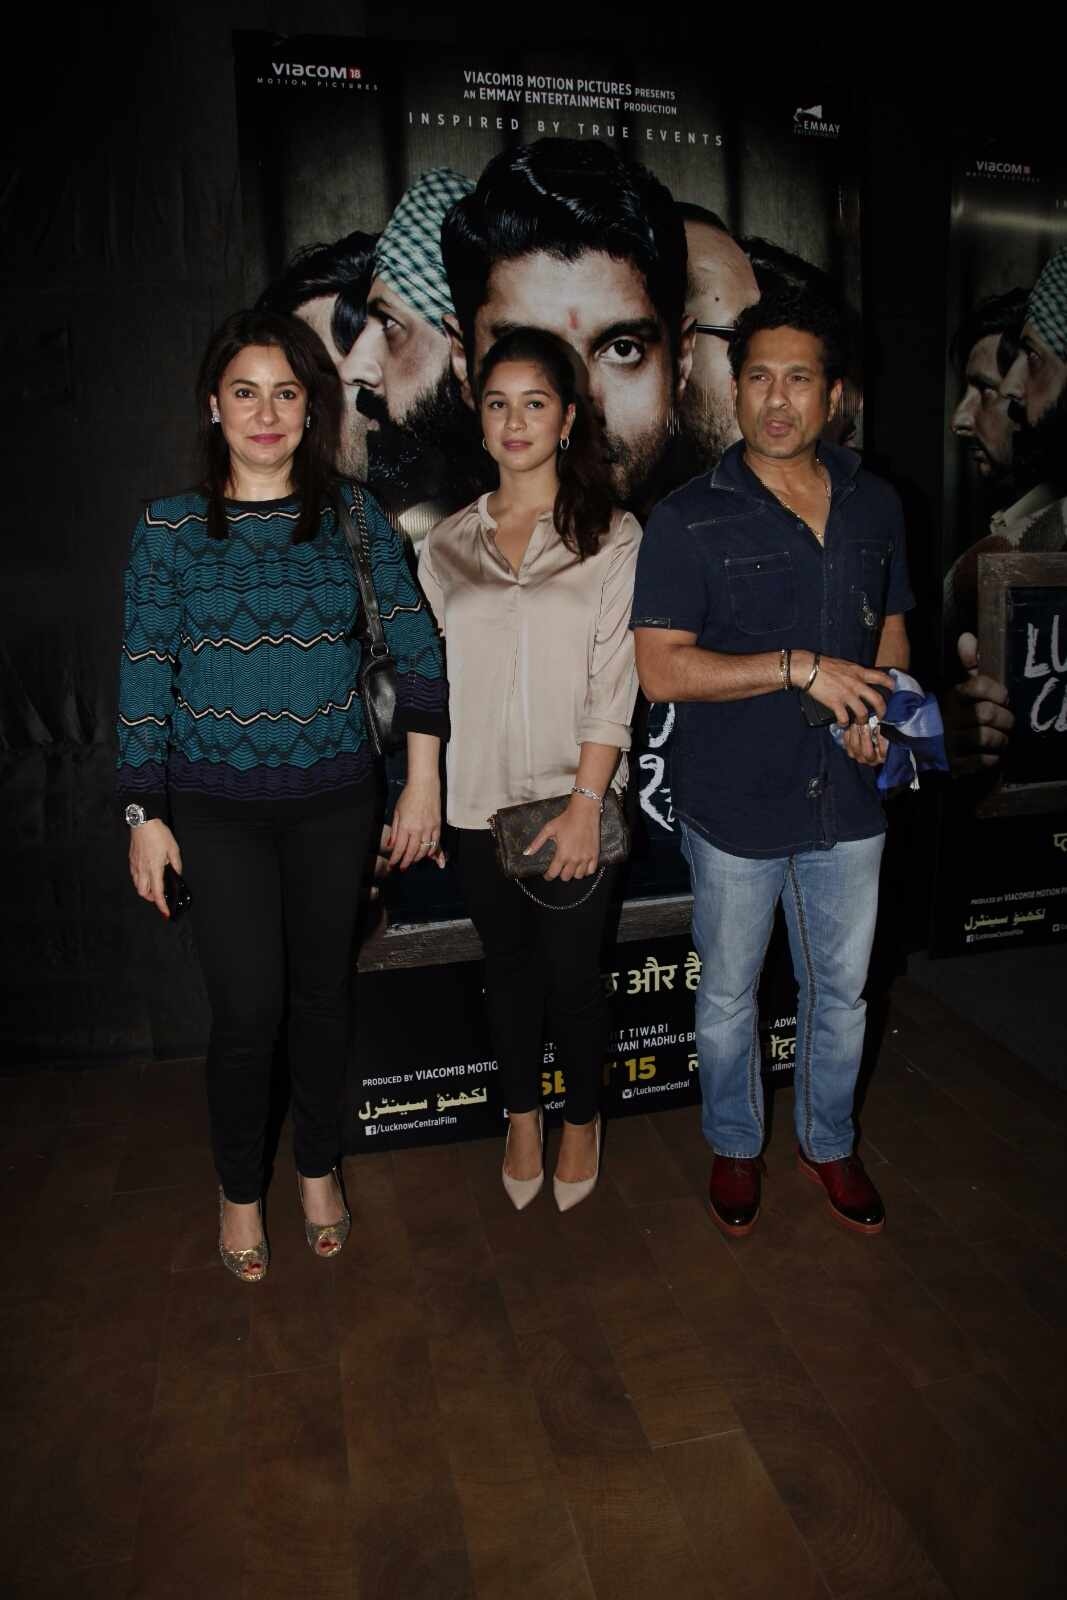 Sachin attends the premiere of Lucknow central's screening with wife and daughter